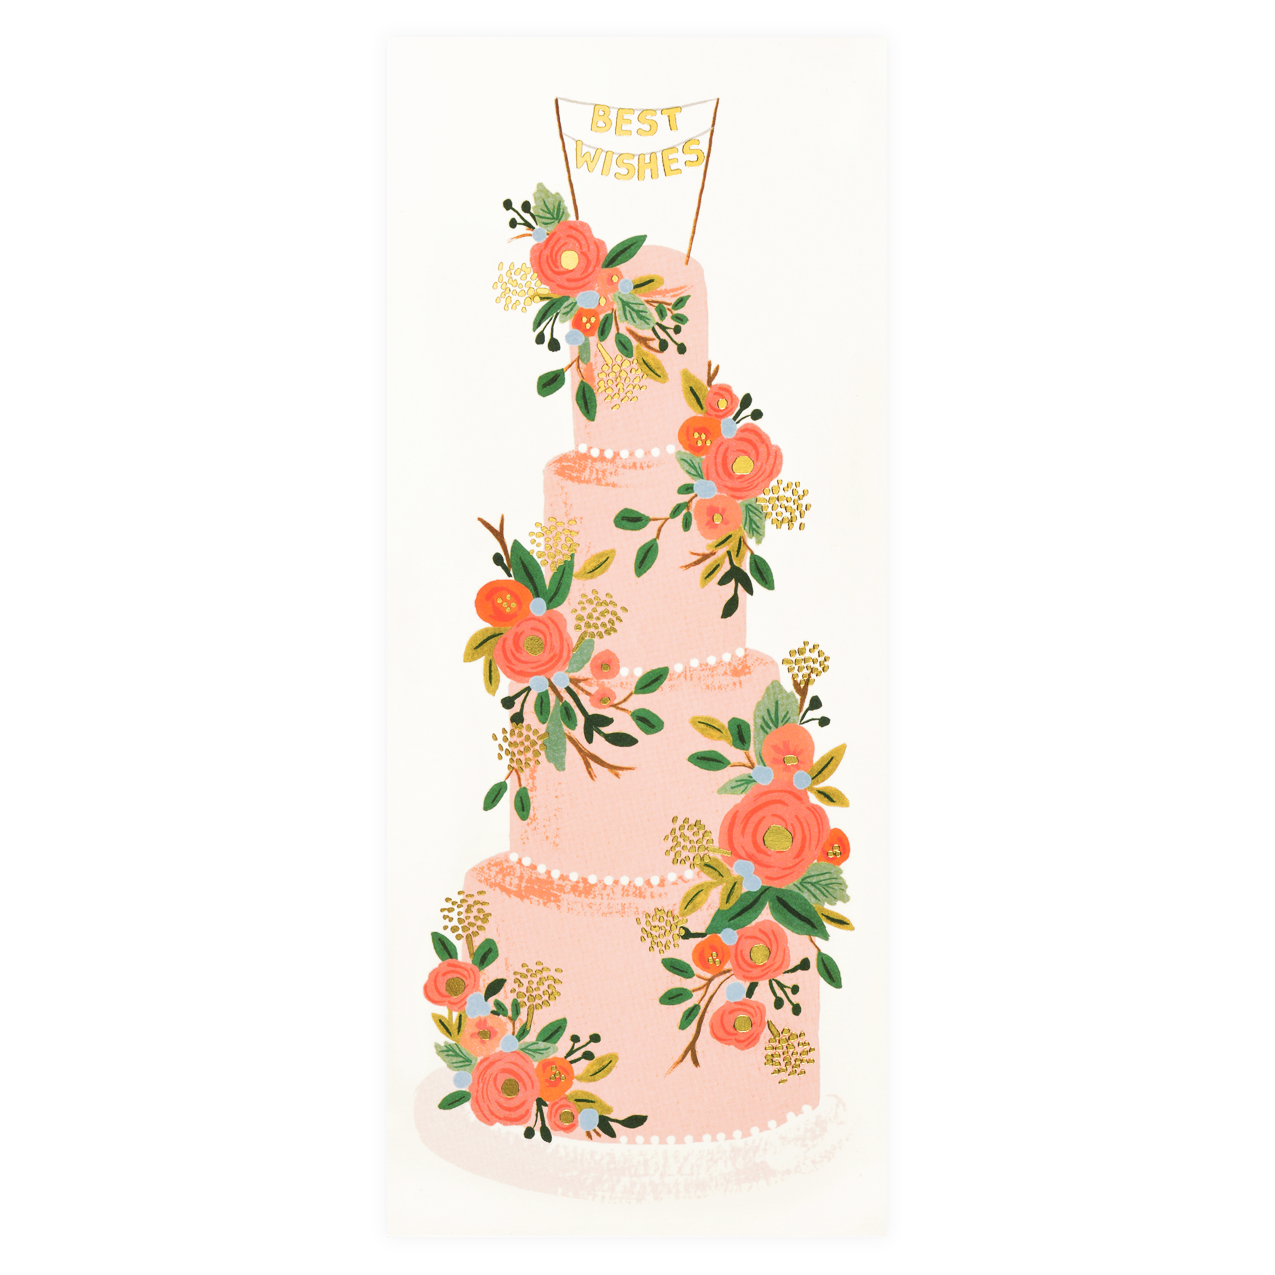 Tall Wedding Cake Greeting Card